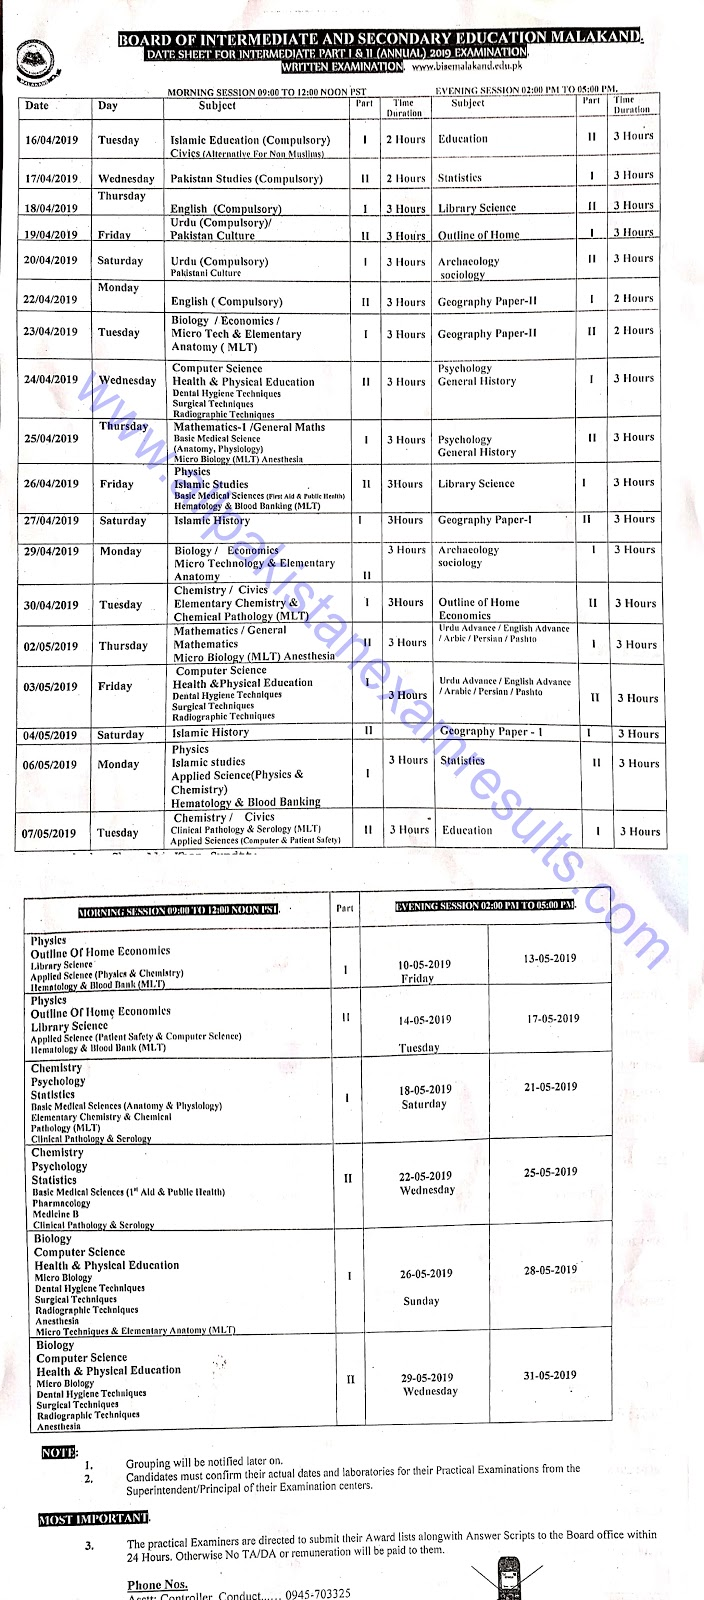 BISE Malakand Board Inter Date Sheet 2019